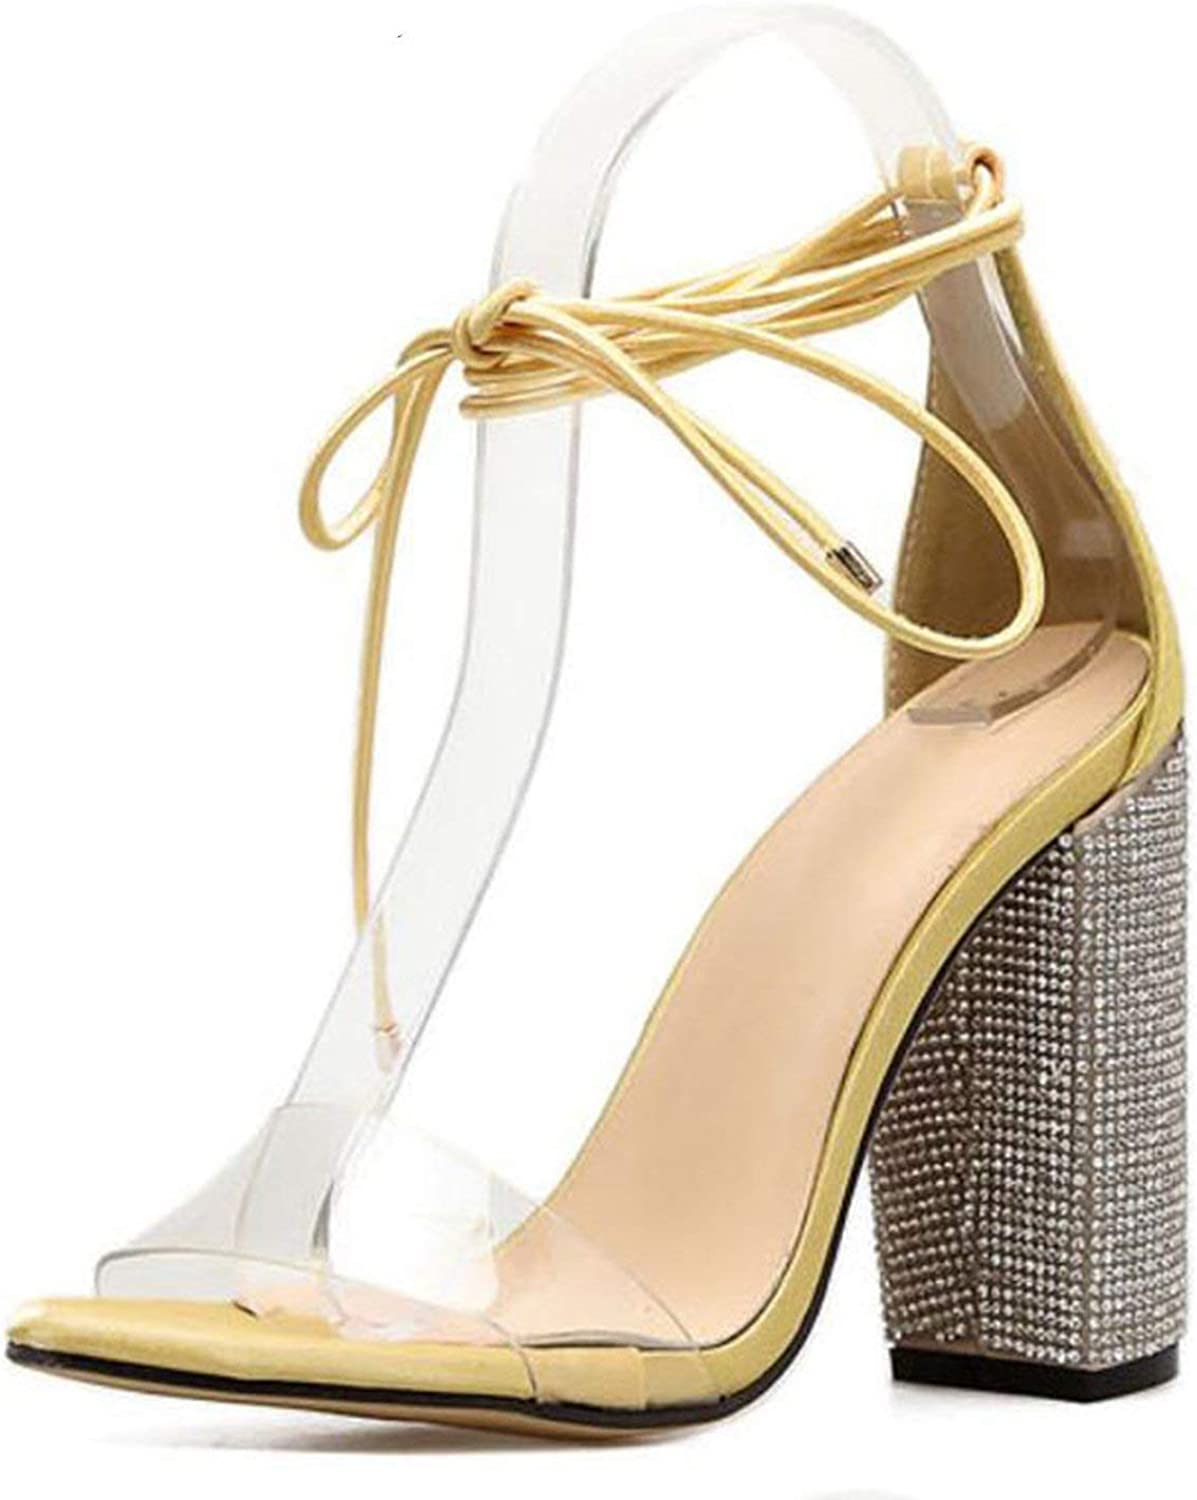 Coolemon Women High Heels Sandals Summer Square Heels Crystal Heeled Platform shoes Ladies Sexy Party Wedding Lace Up shoes,Yellow,4